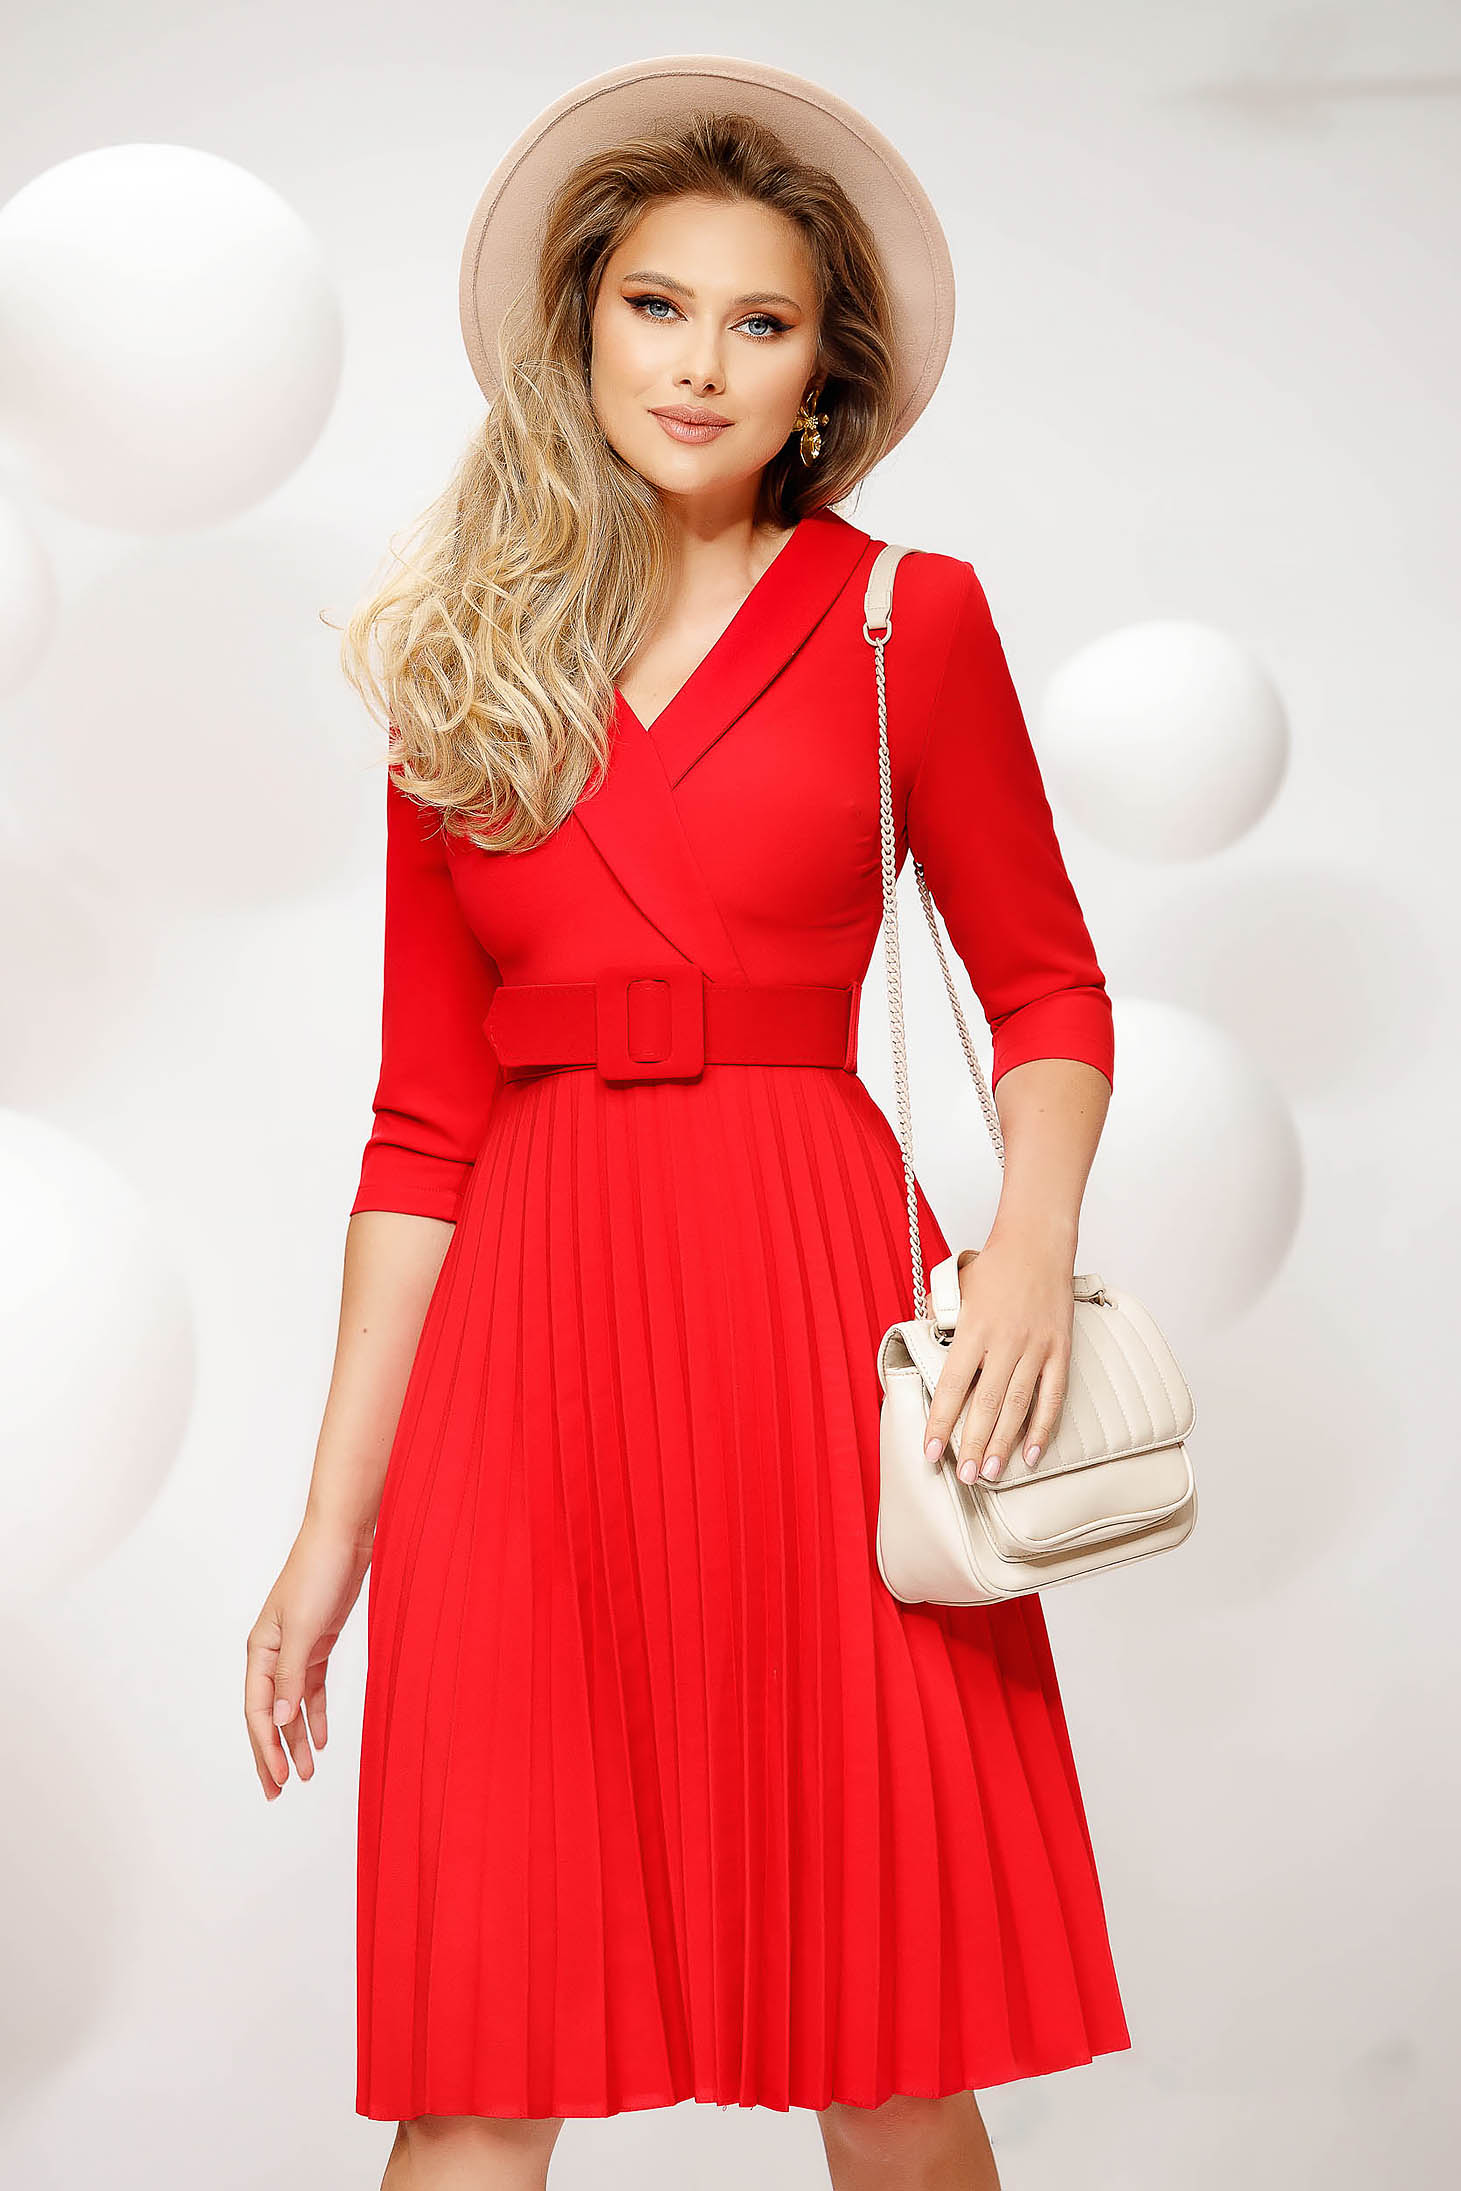 Red dress thin fabric cloche midi office nonelastic fabric accessorized with belt folded up